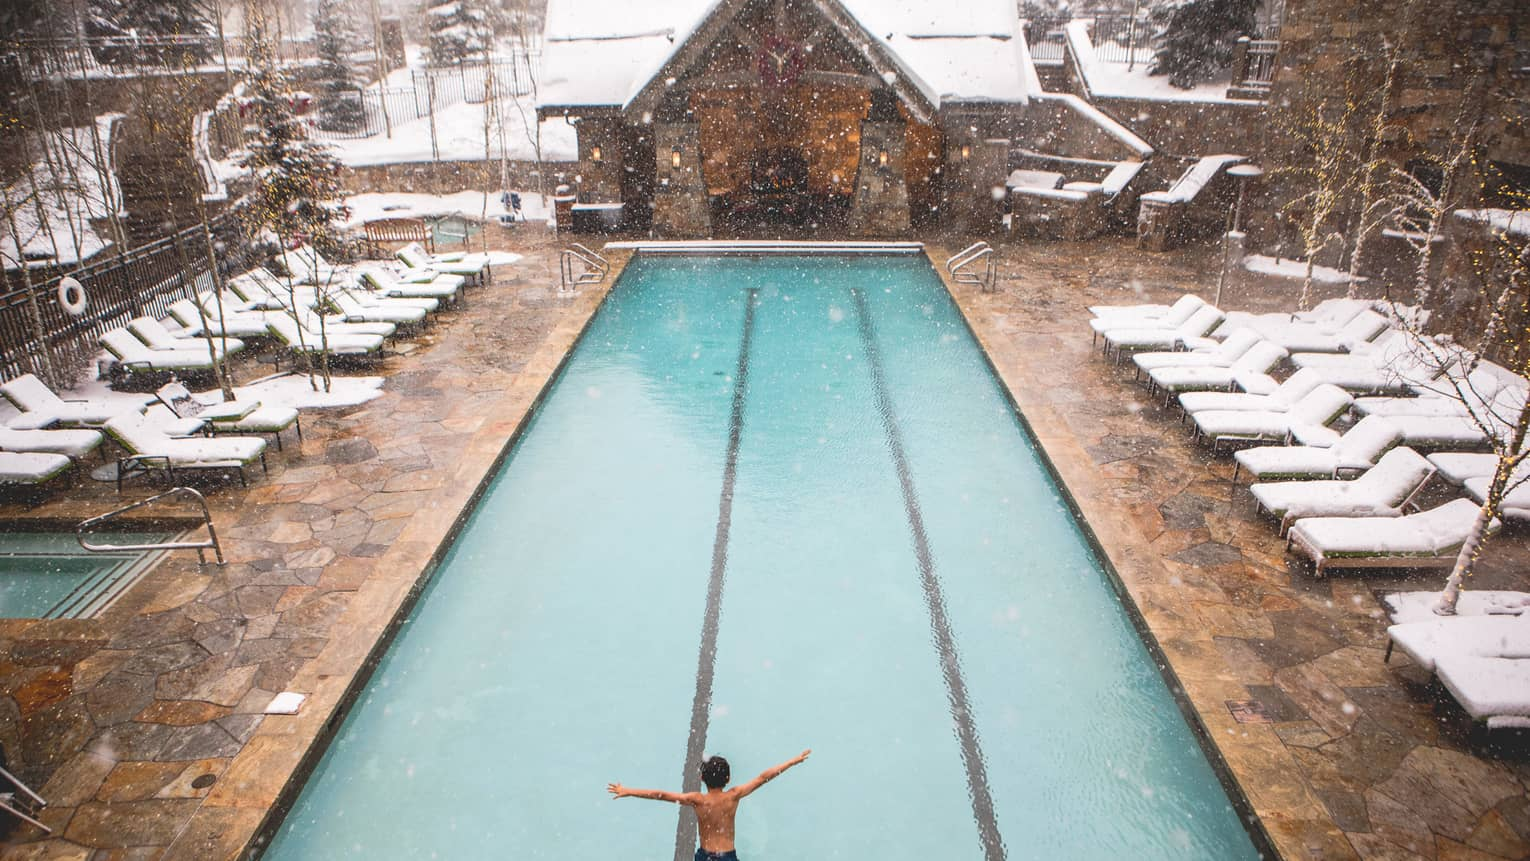 Two children jump into the heated pool on a snowy day at Four Seasons Vail